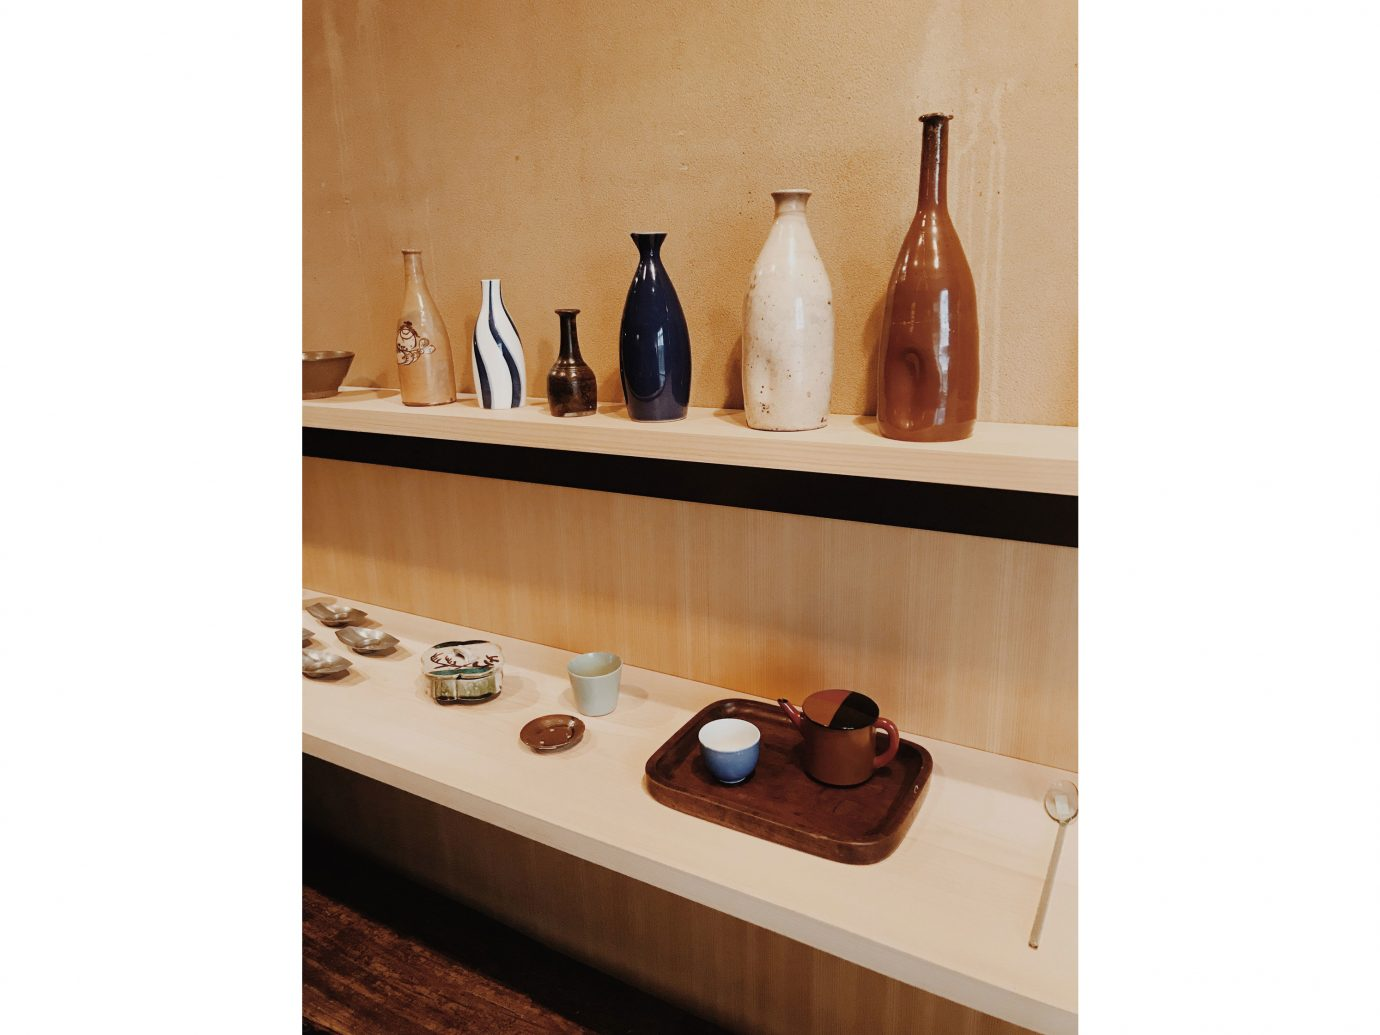 Influencers + Tastemakers Japan Photo Diary Tokyo indoor furniture shelf product design wood table different ceramic several